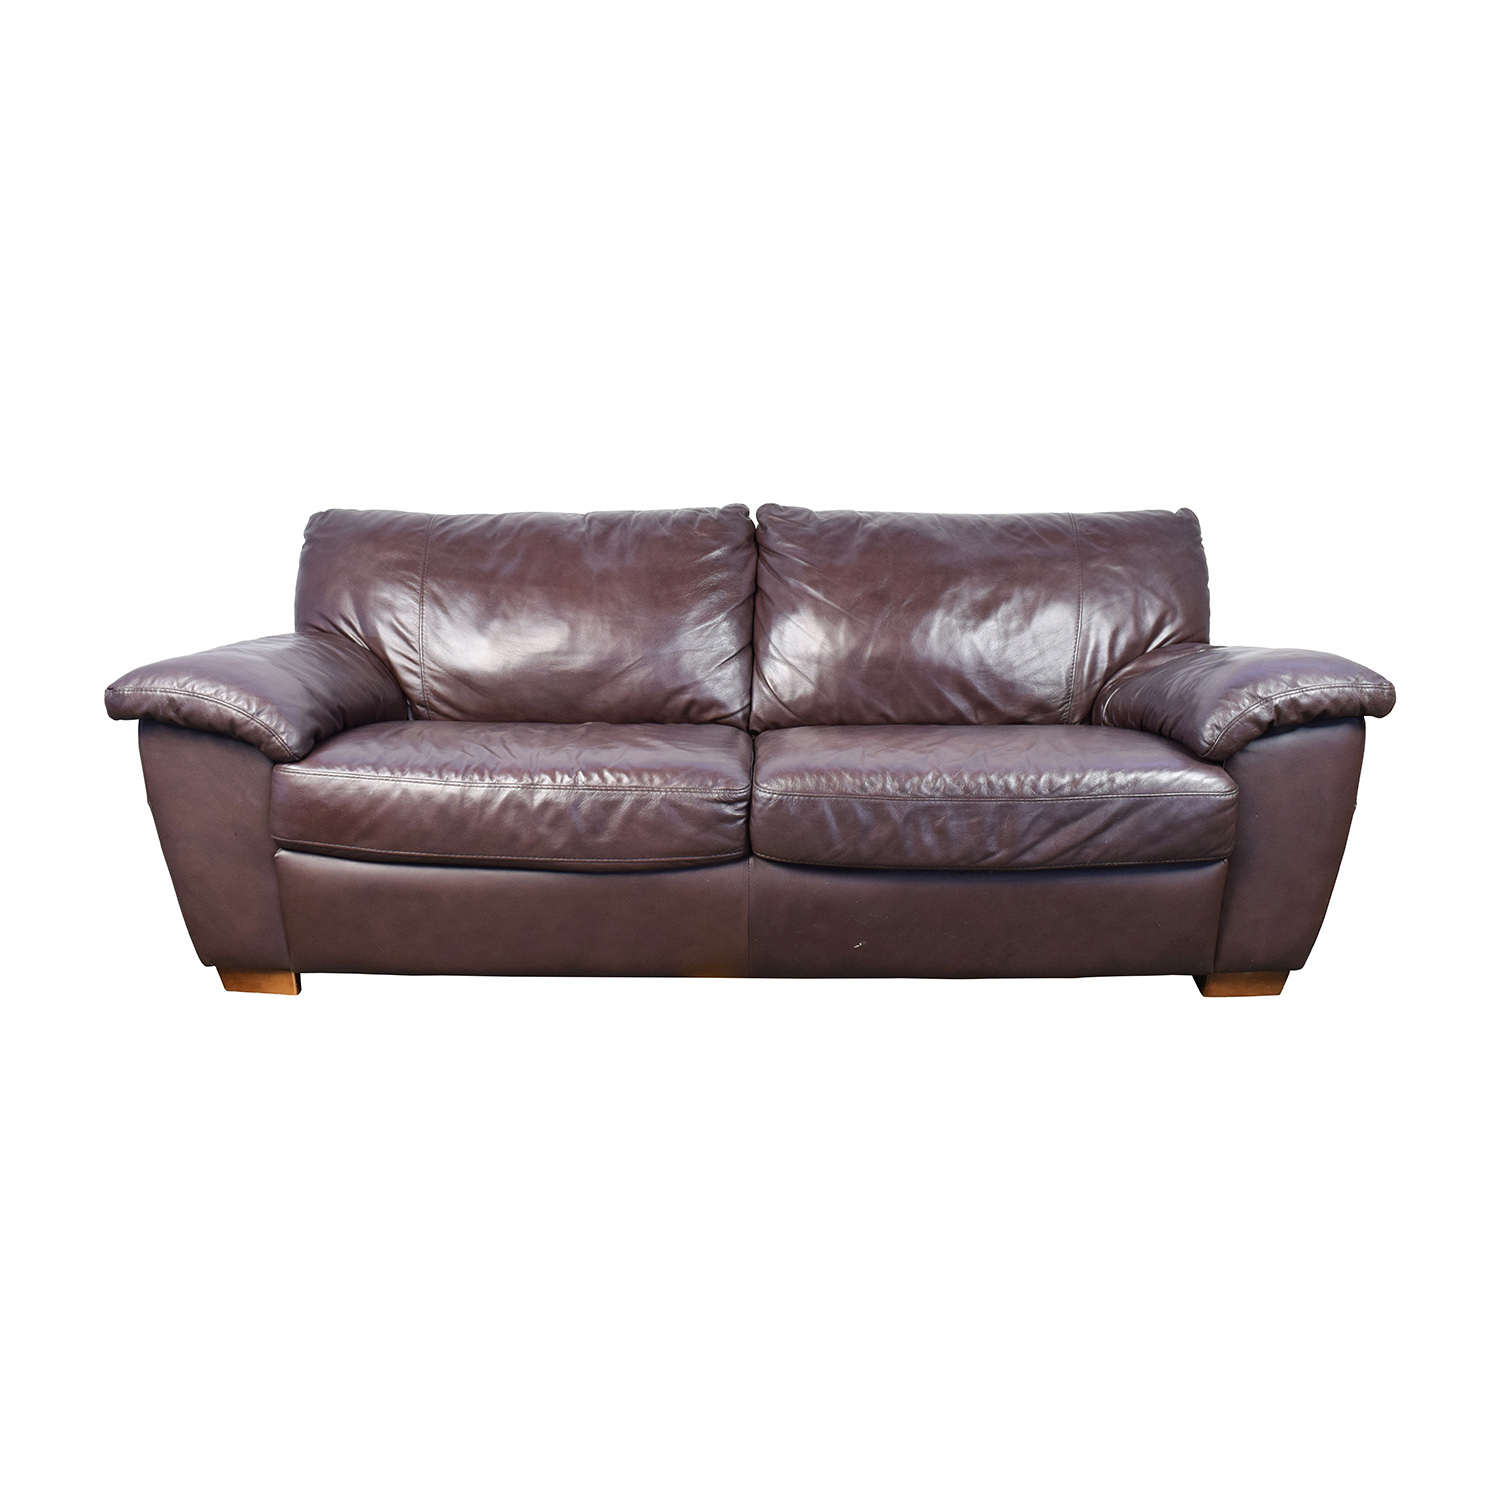 Espresso Leather Couch nj